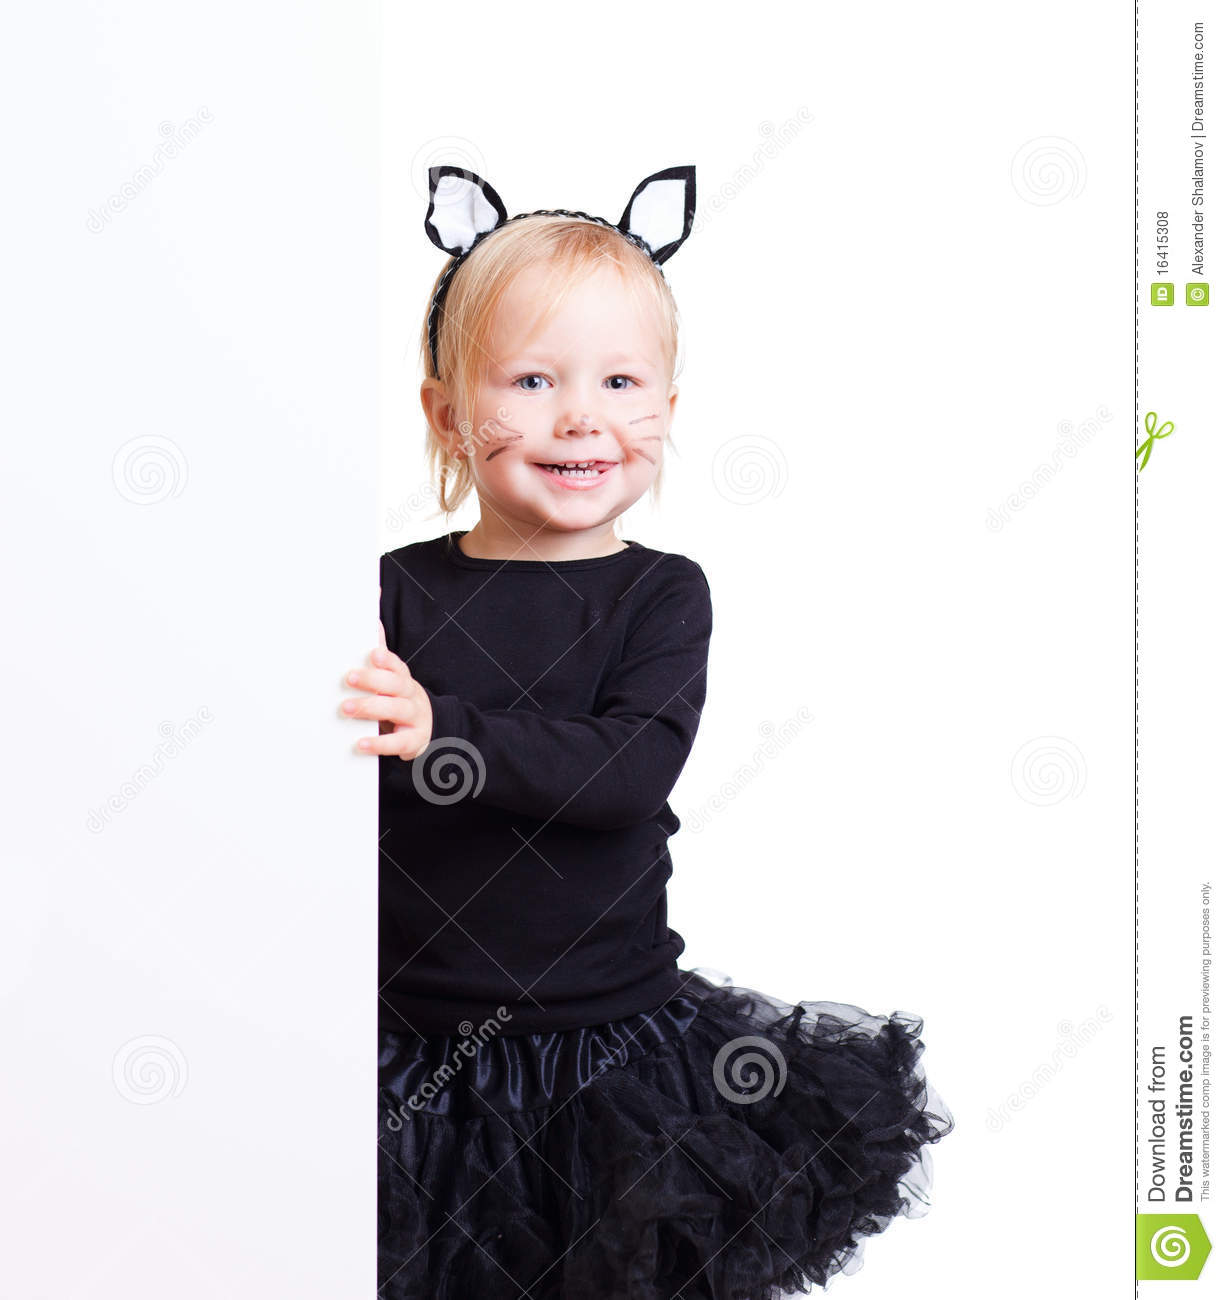 girl in black cat costume with banner stock photo - image of person